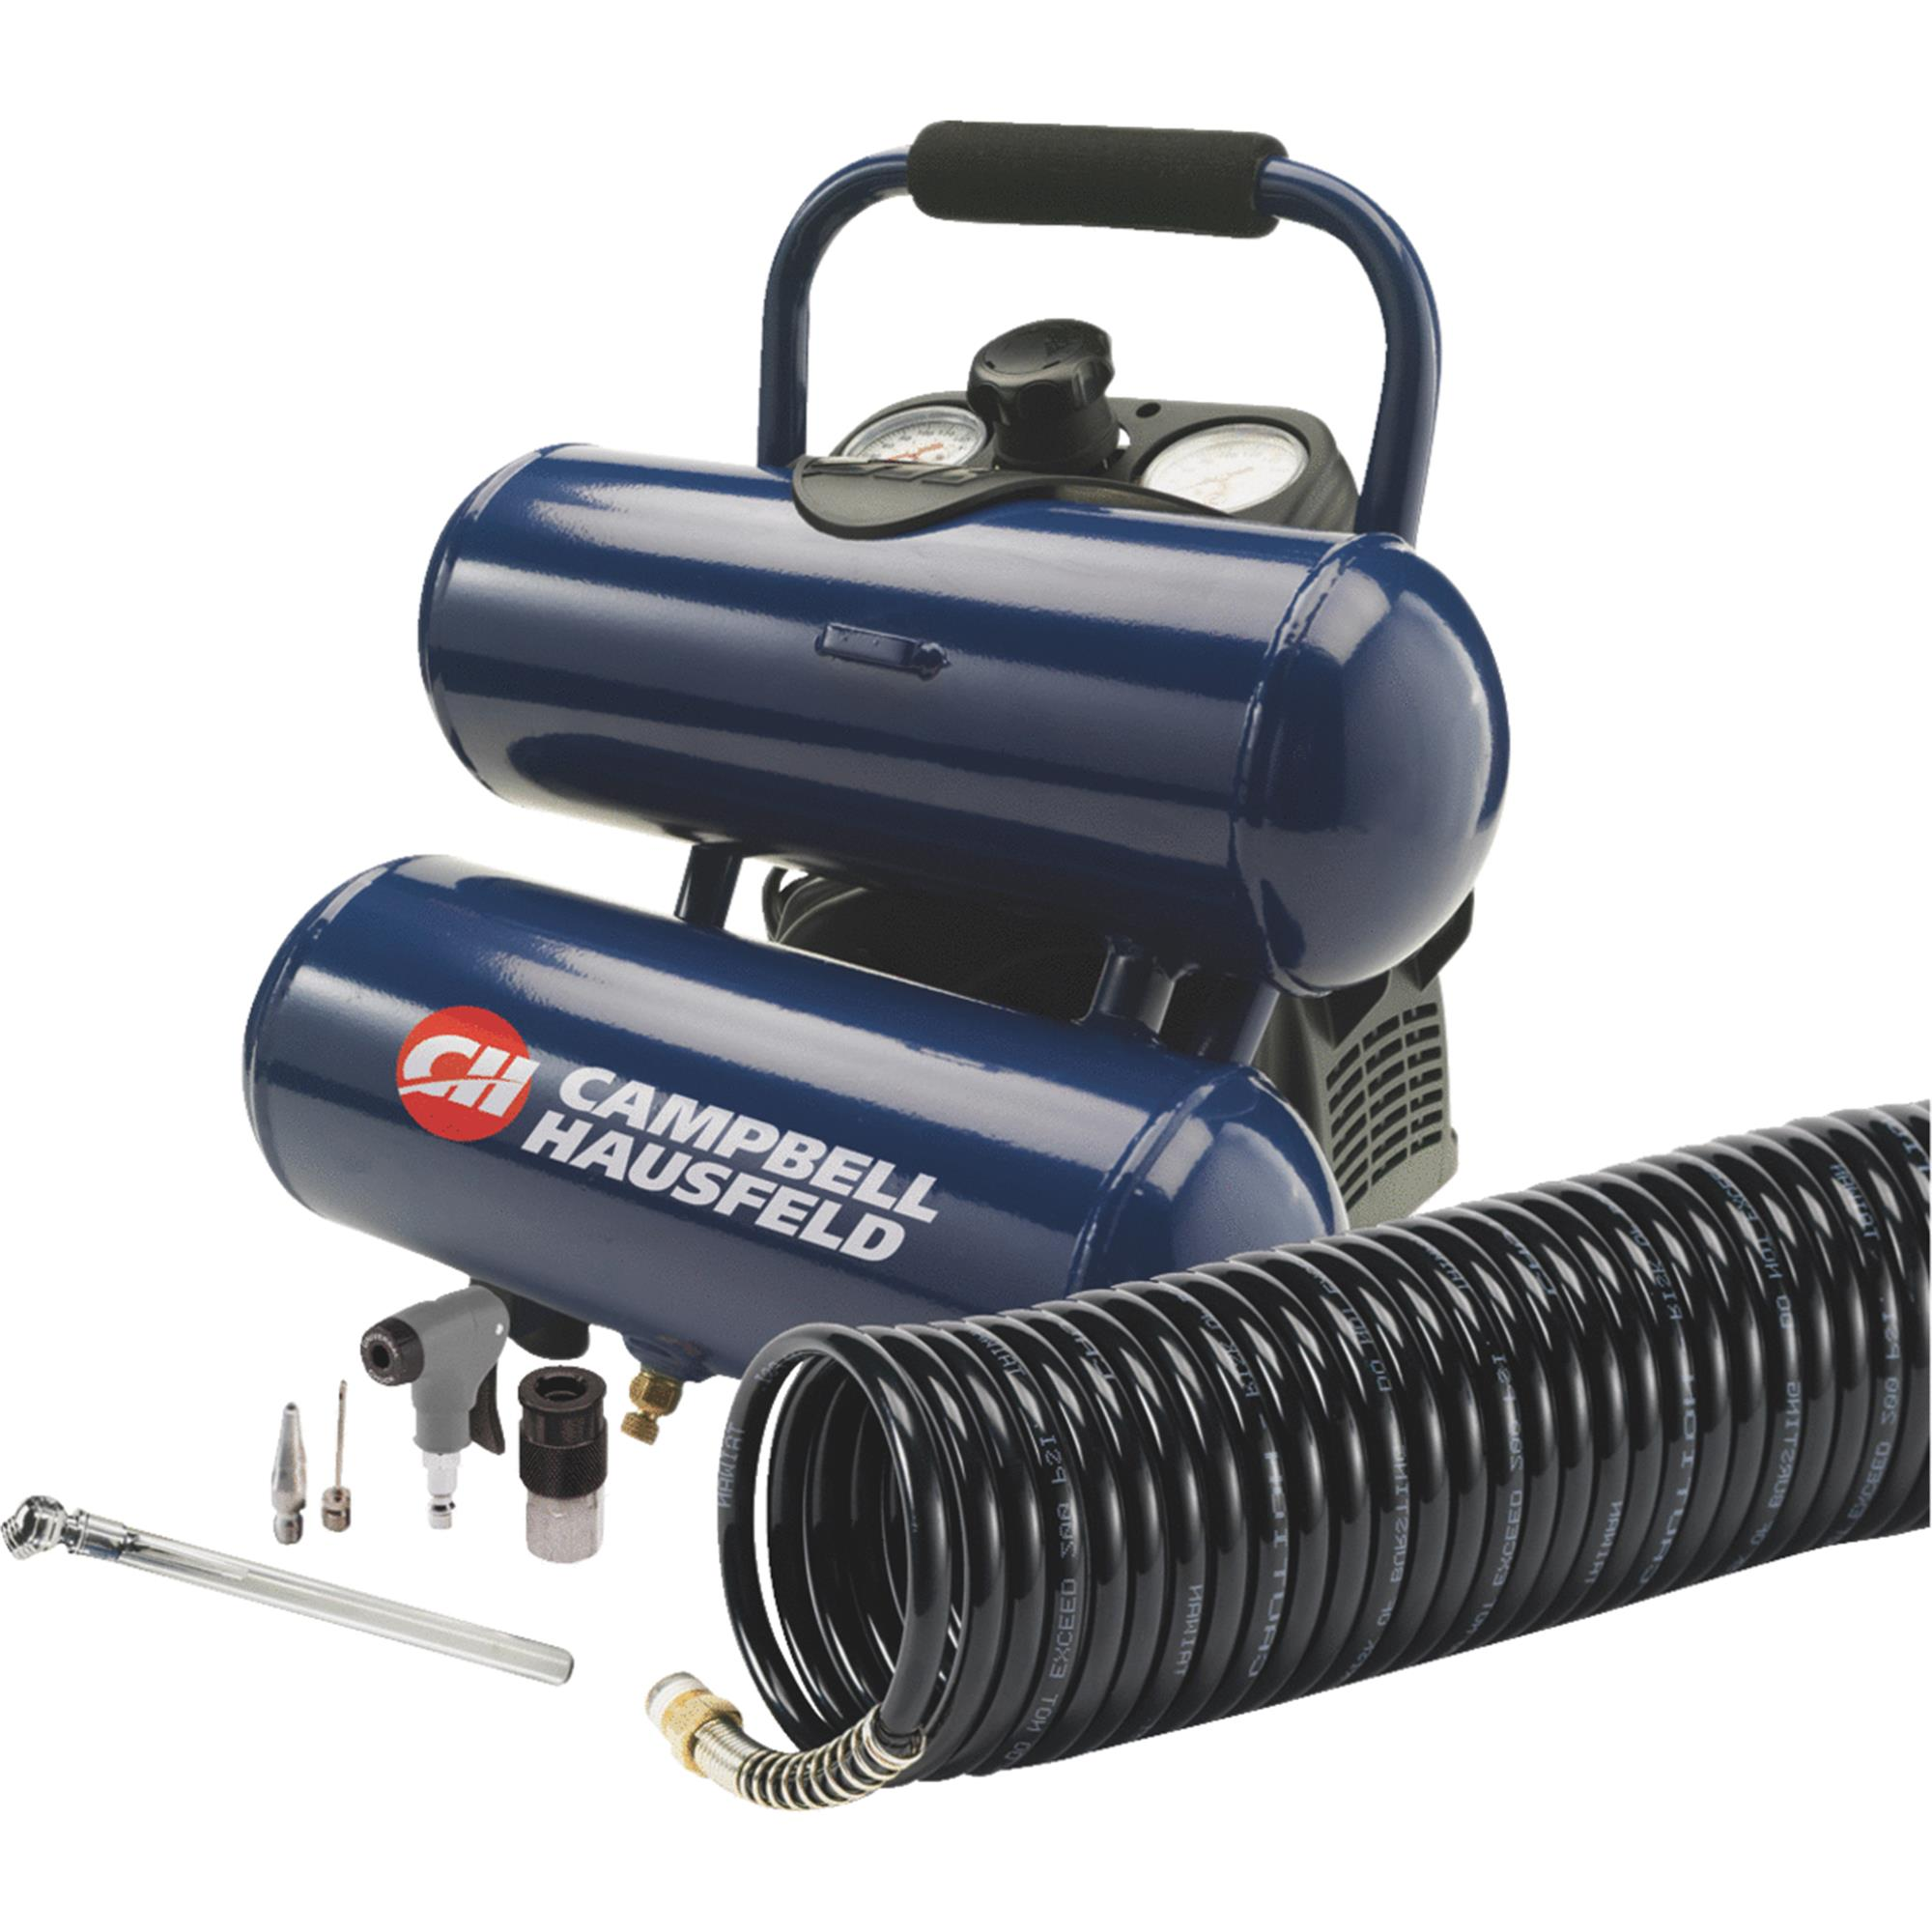 Campbell Hausfeld 2 Gal. Twin-Stack Air Compressor Kit